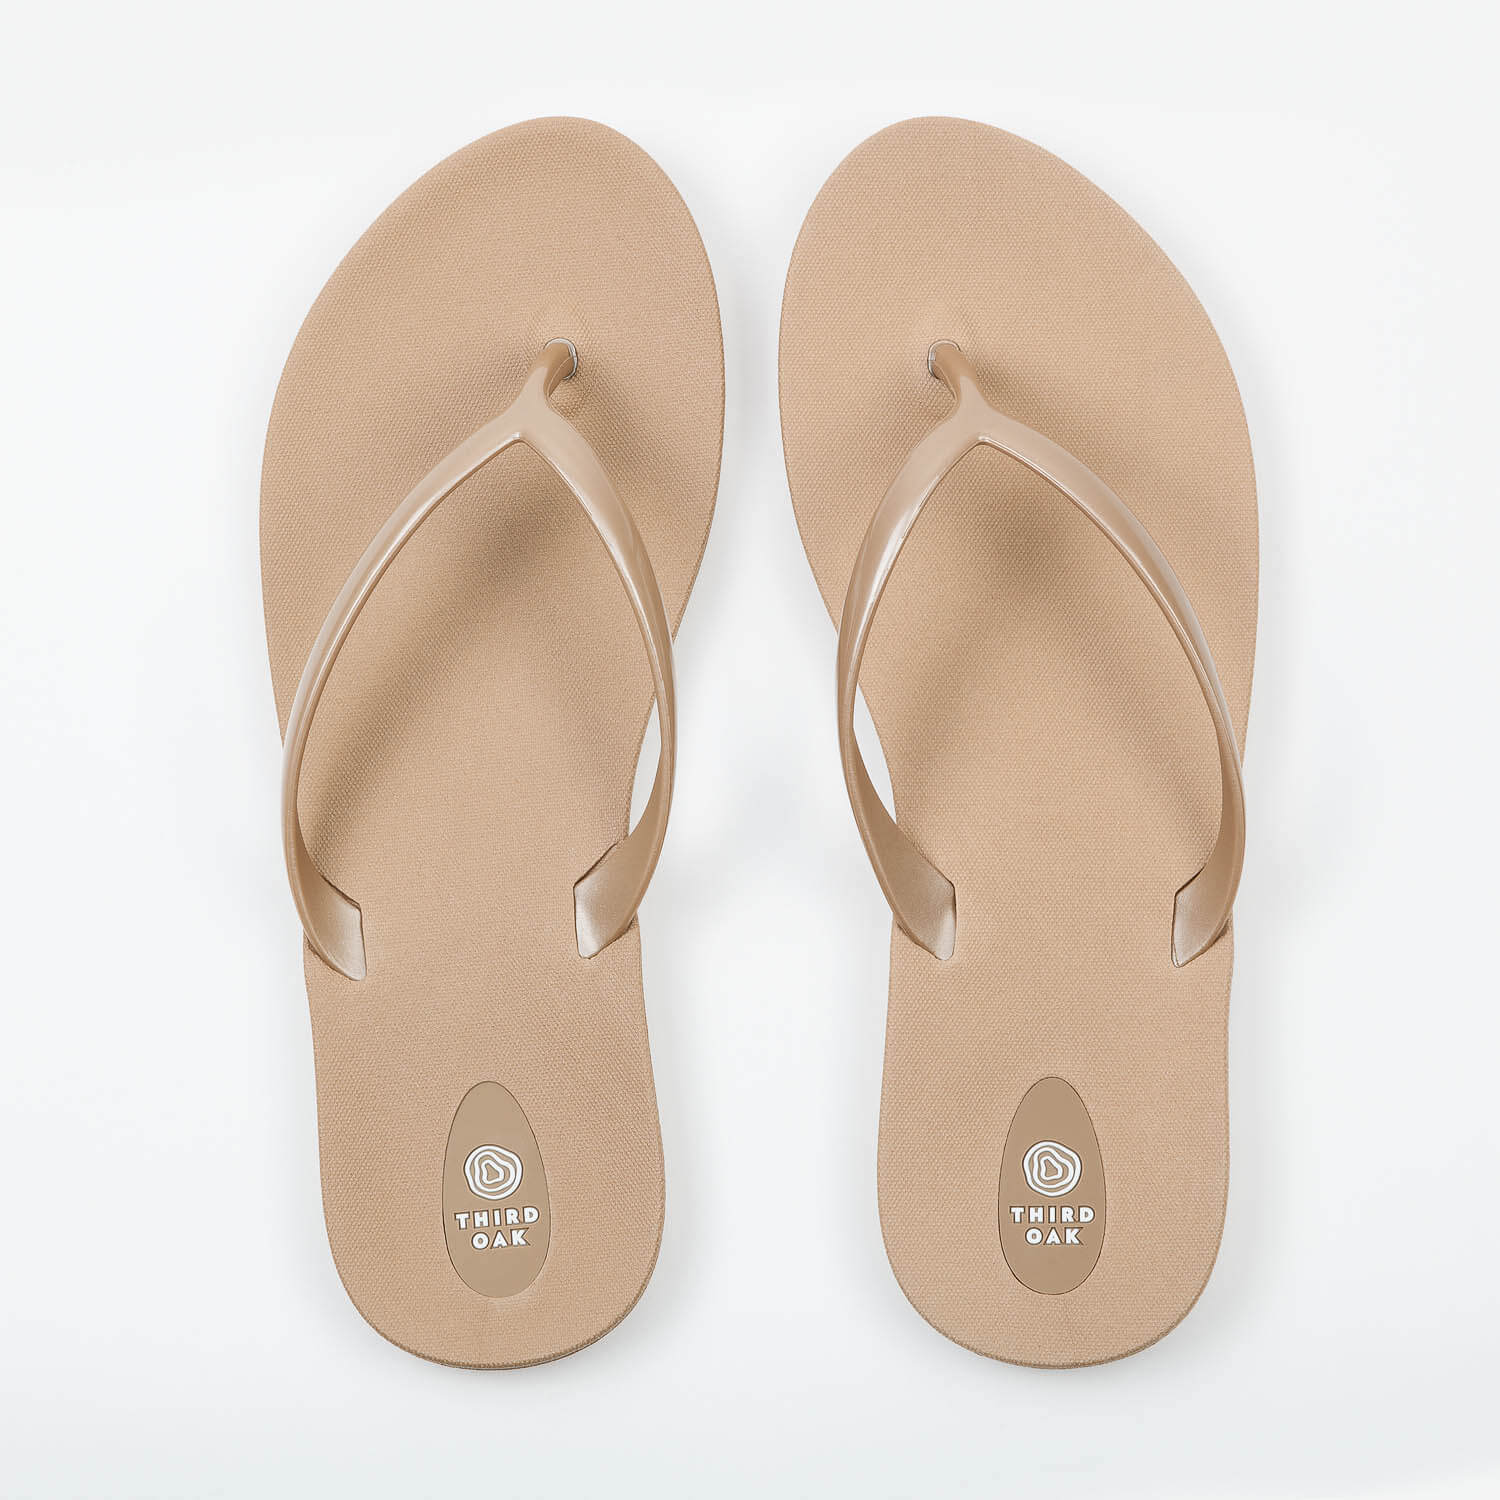 79138f7726f0 Scout Chai Aged Gold.  30.00. Lightweight. Comfortable. Recyclable. These  gold women s flip flops ...